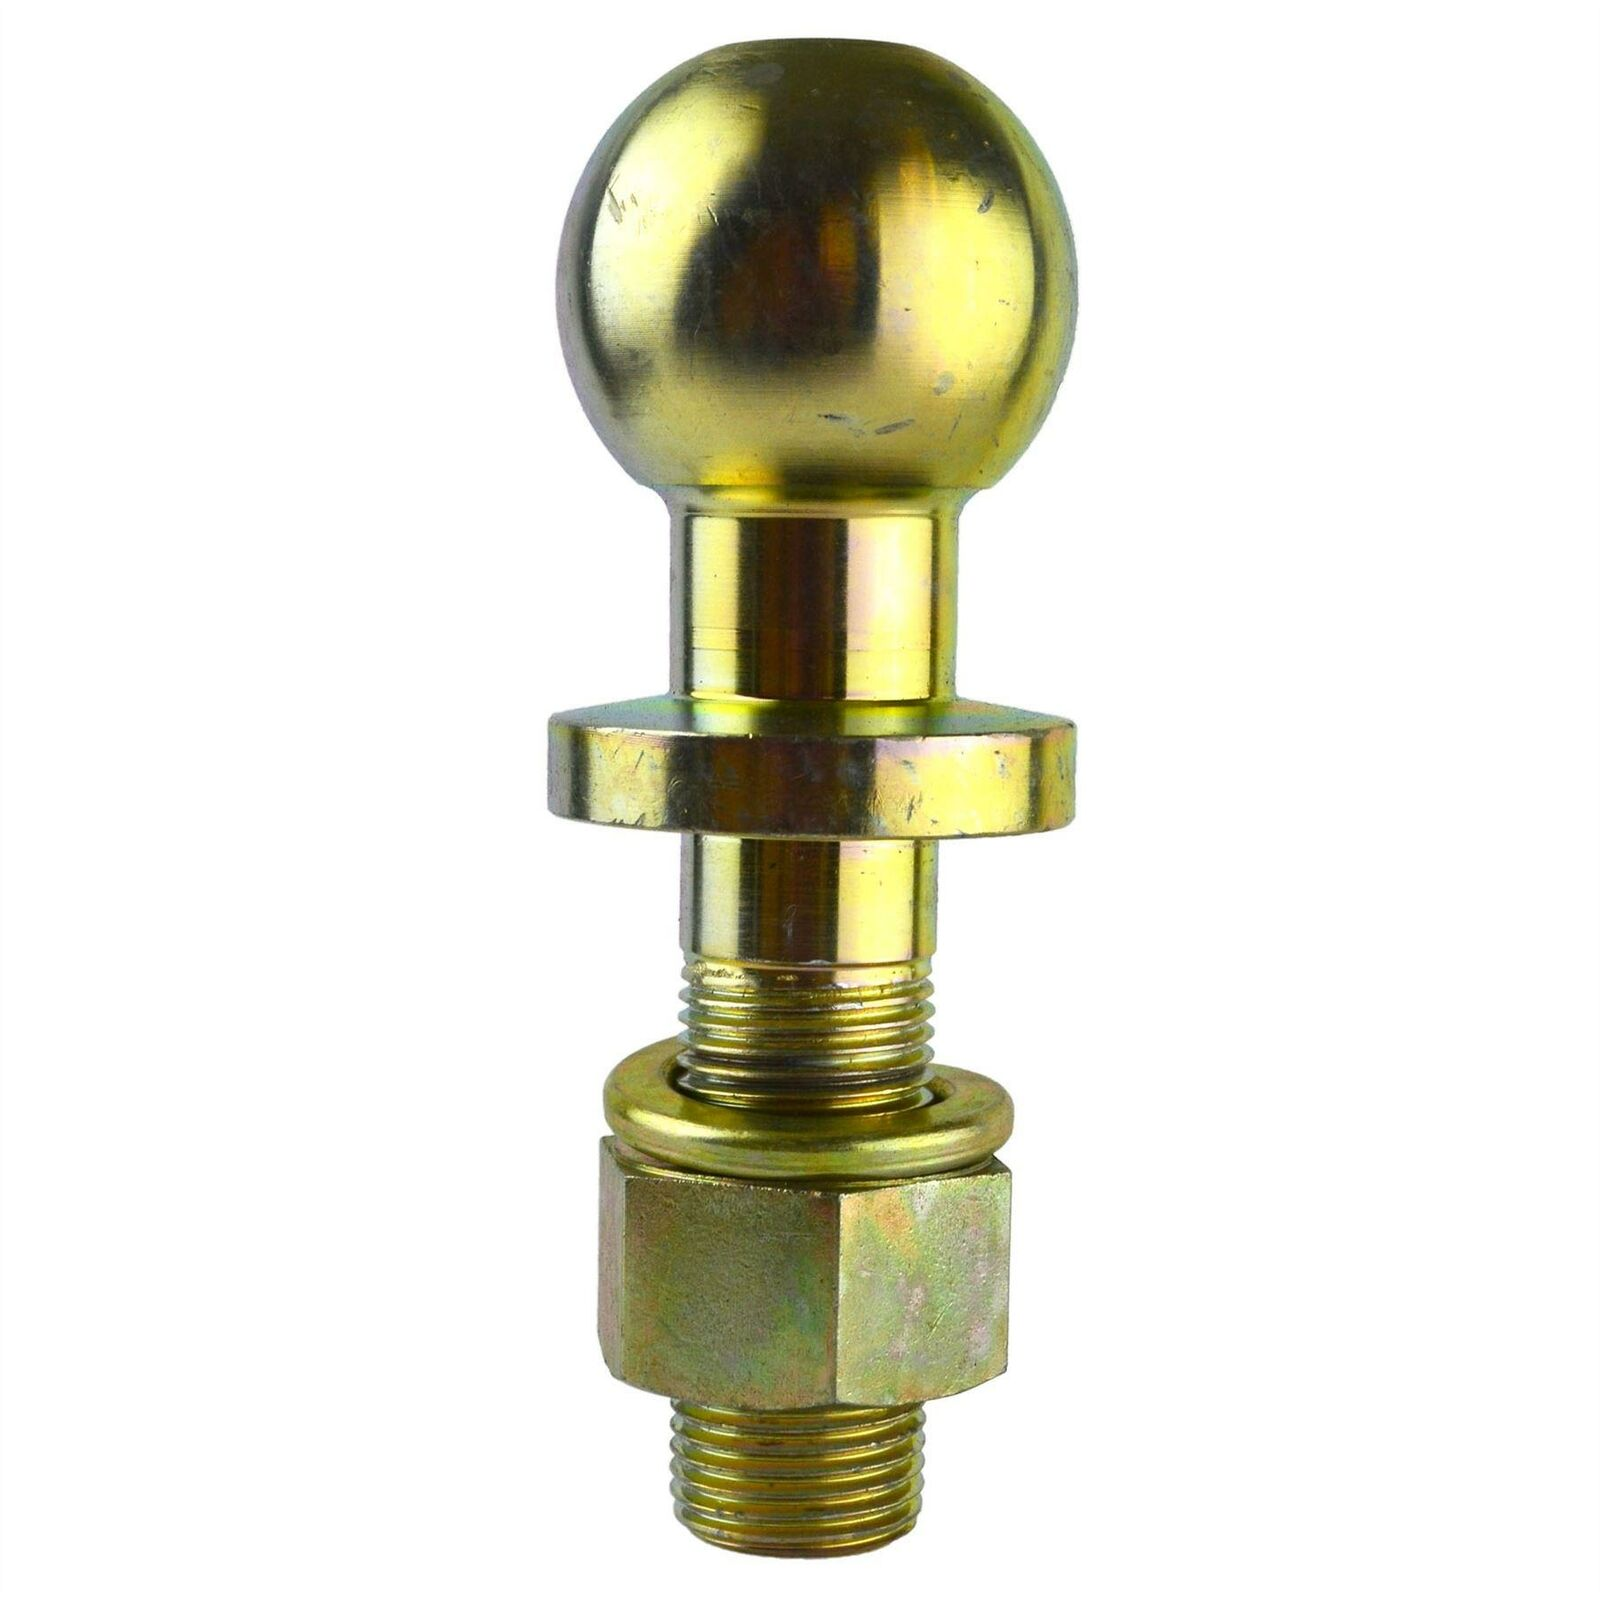 50mm Tow Ball / Bar Threaded Short Type for Recovery, Trike, Quad